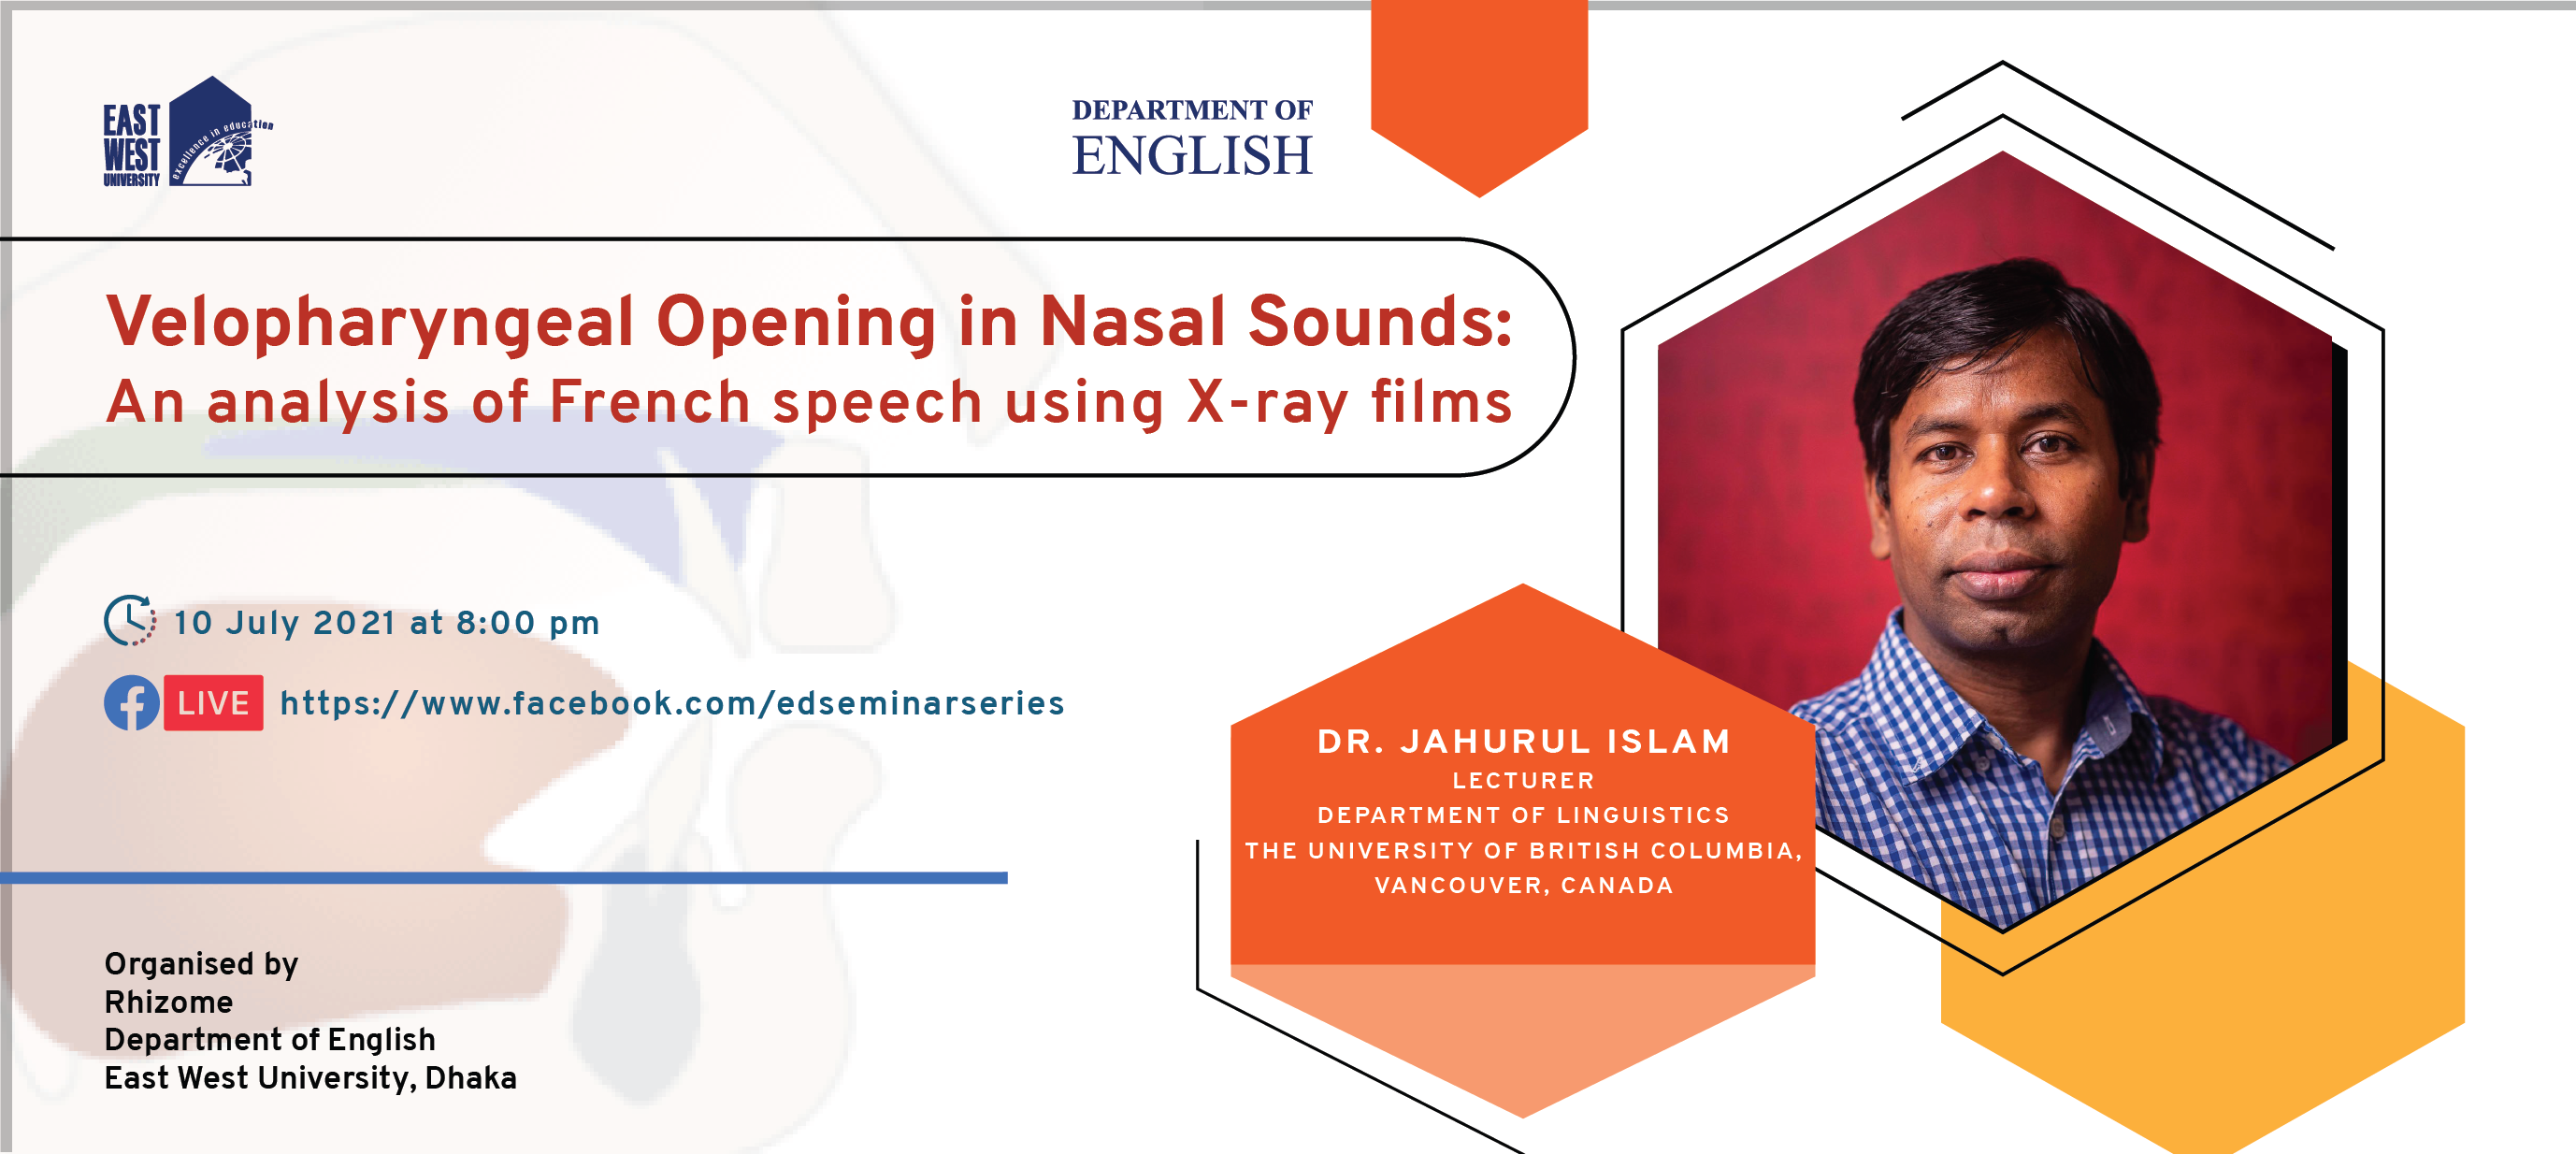 """Dr. Jahurul Islam presented his paper on """"Velopharyngeal Opening in Nasal Sounds: An analysis of Fre..."""